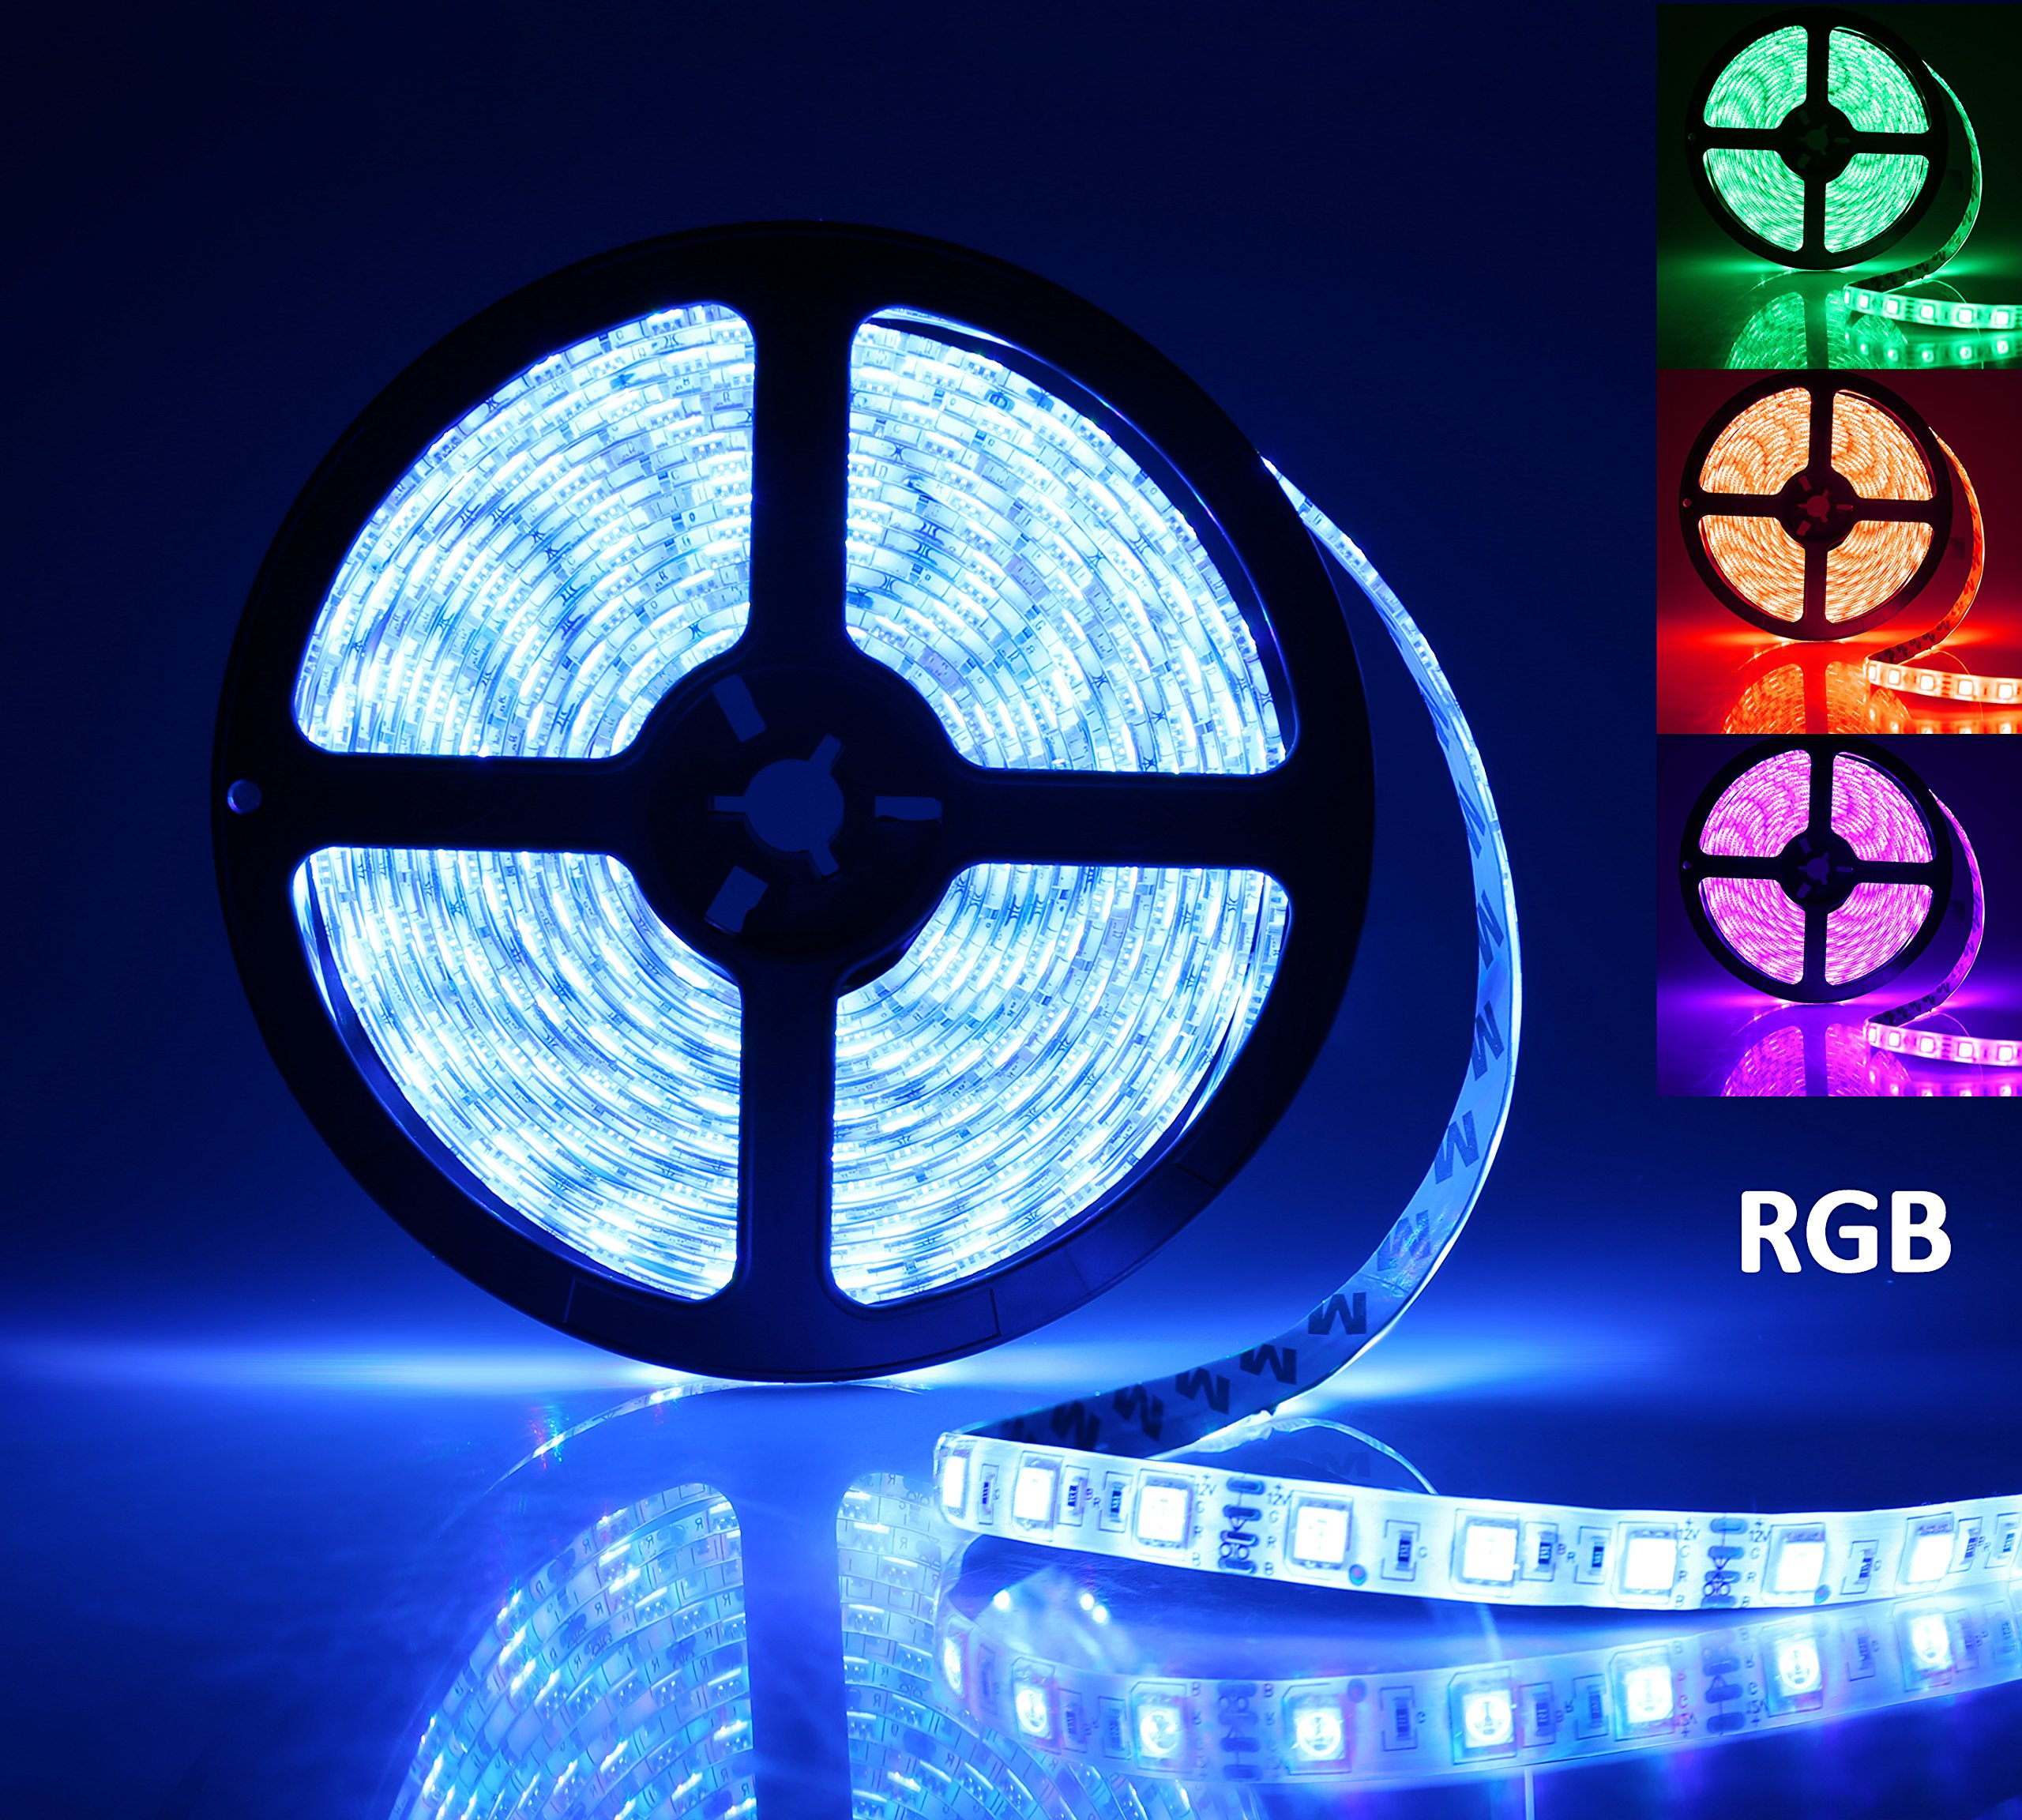 LED Light Strip, AllBlue Rope Lights, 16.4ft RGB 5050smd 300led Waterproof Flexible Led Light Strip Lamp with 44Keys IR Remote Controller and Power Supply for Cars Trucks Boats Bedroom Garden - RGB